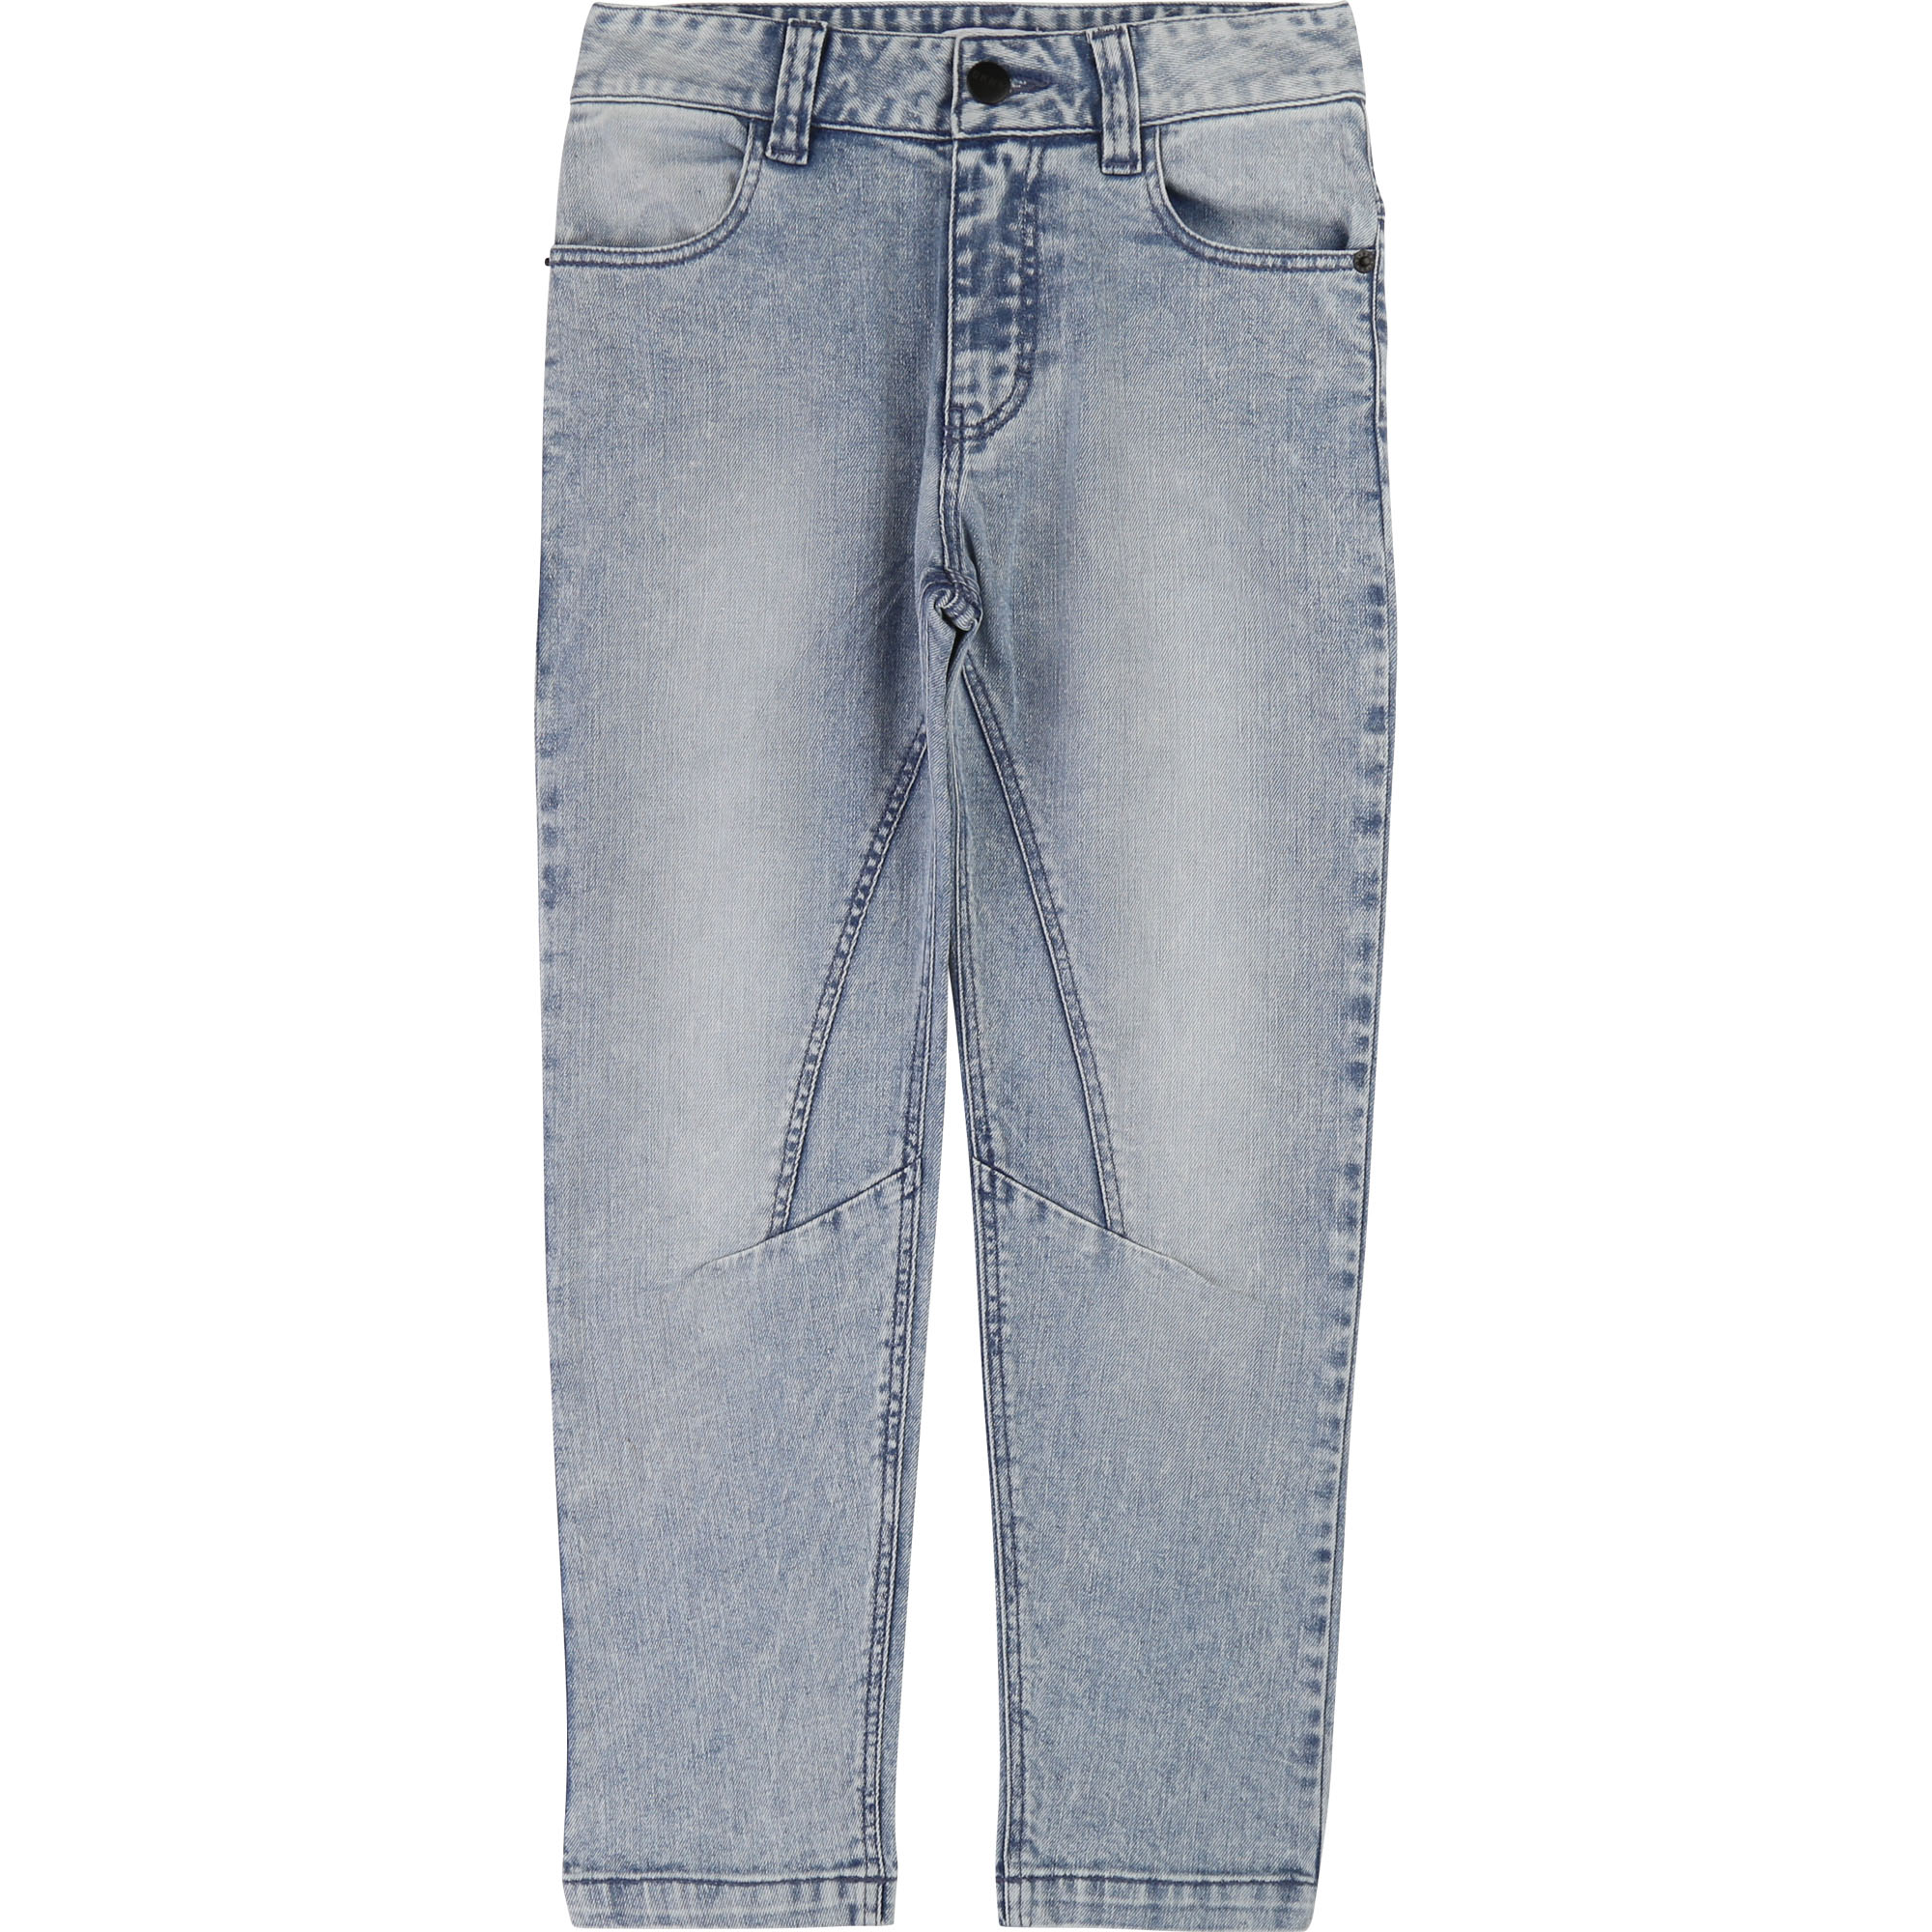 DENIM TROUSERS DKNY for BOY